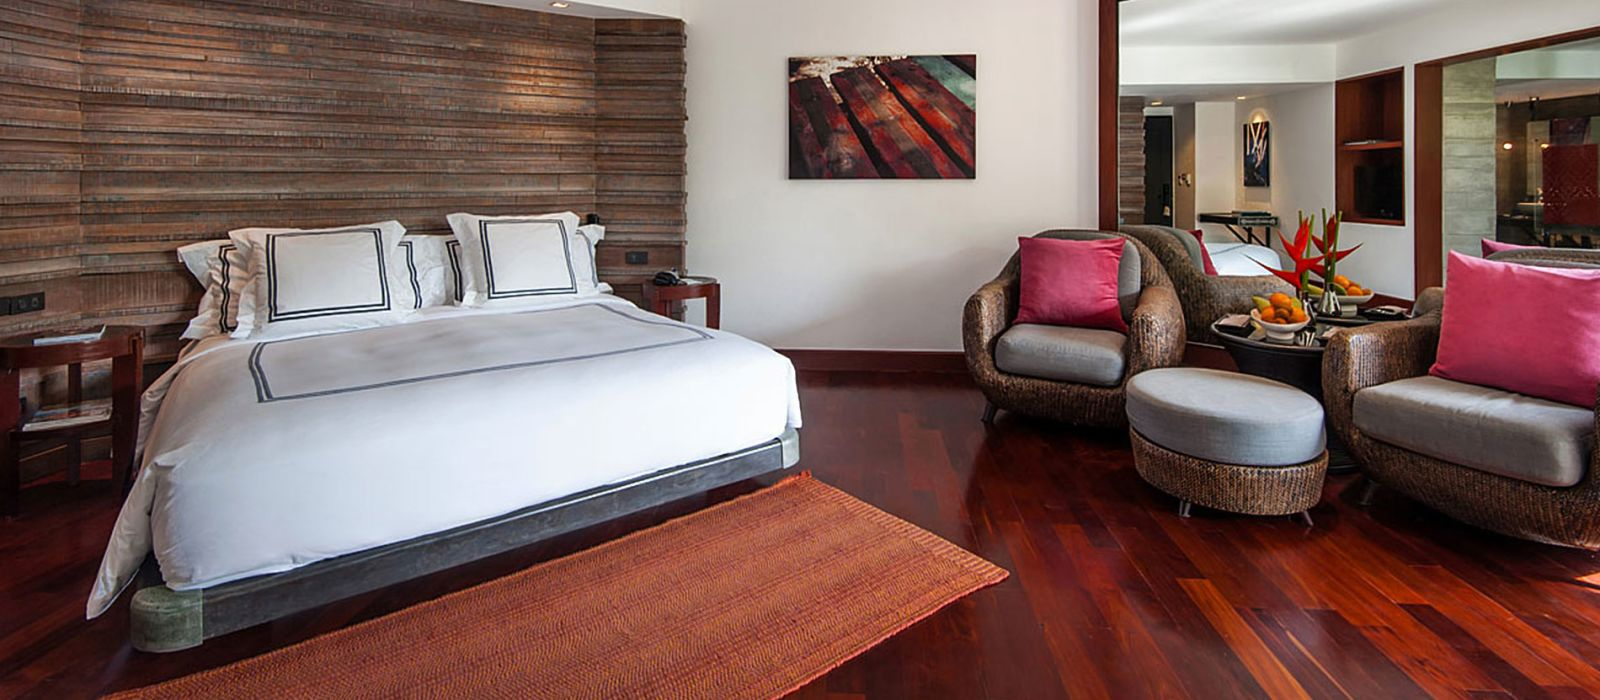 Hotel The Slate Thailand